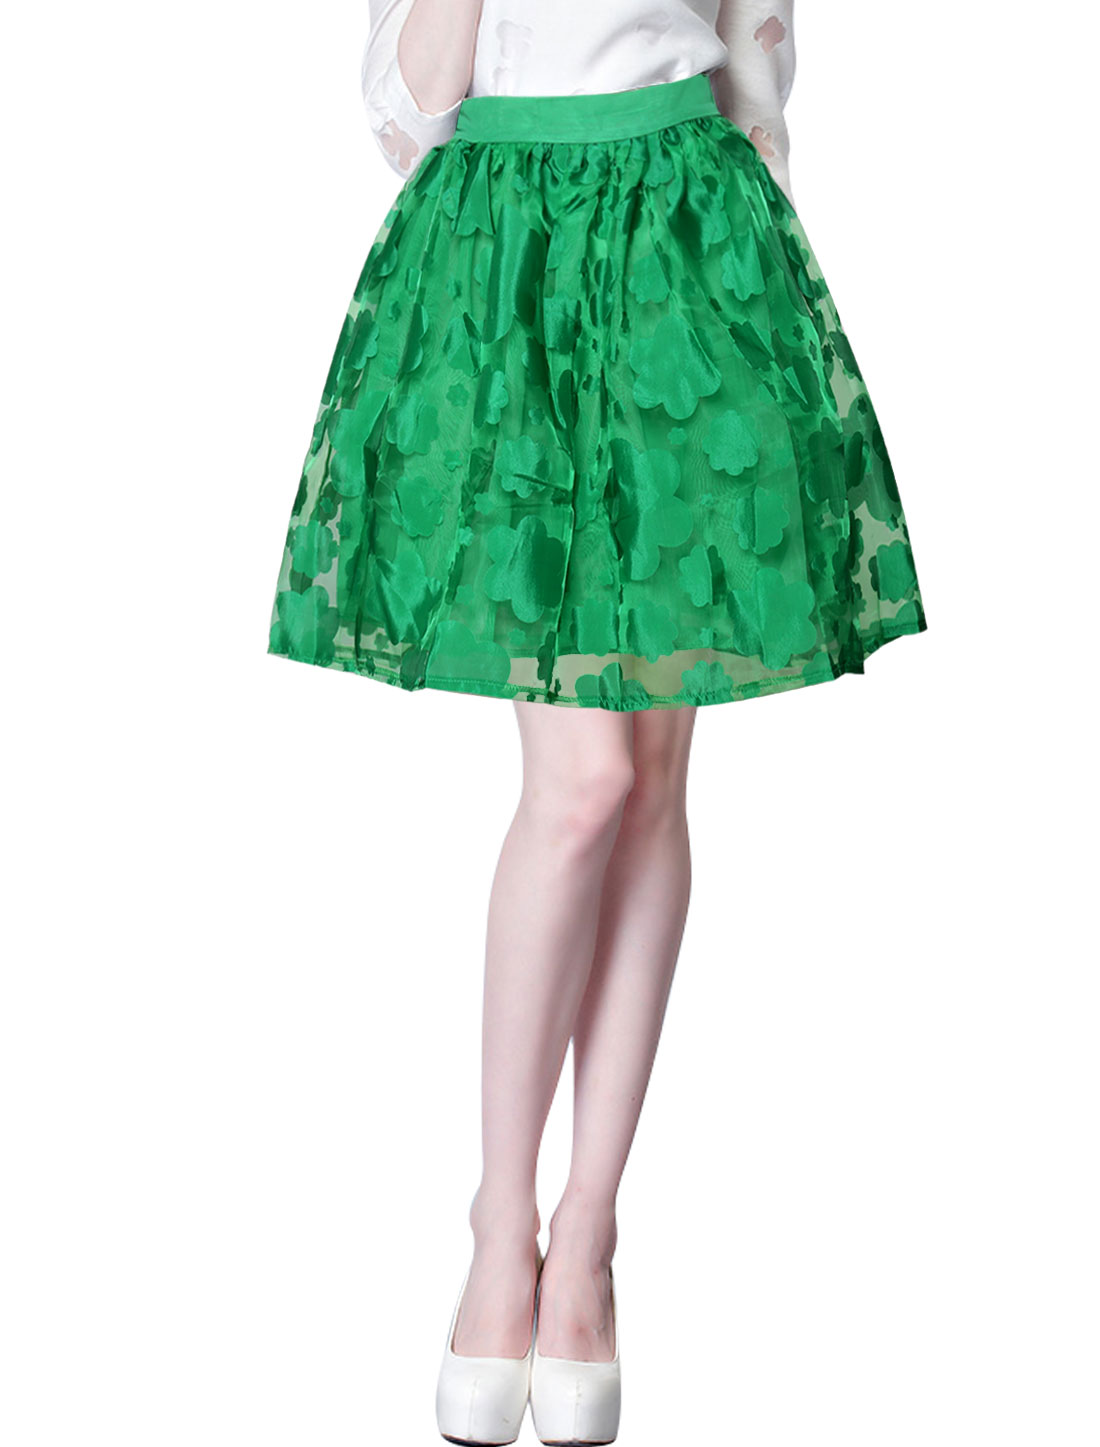 Lady Floral Design Elastic Waist Back Fully Lined Organza Skirt Green M